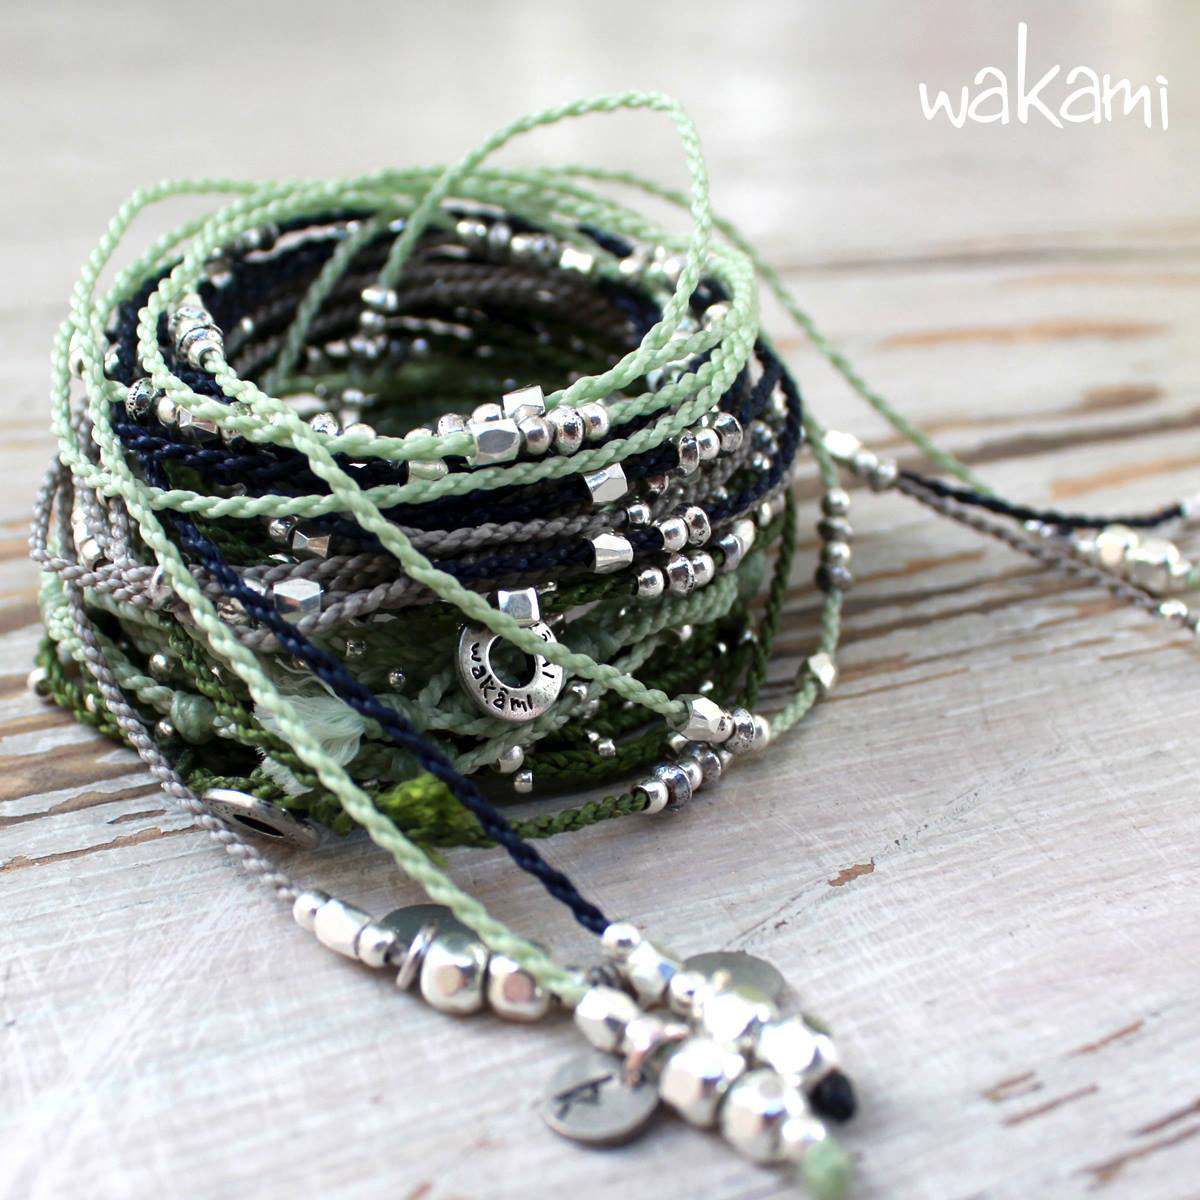 Wakami New Collections 2017